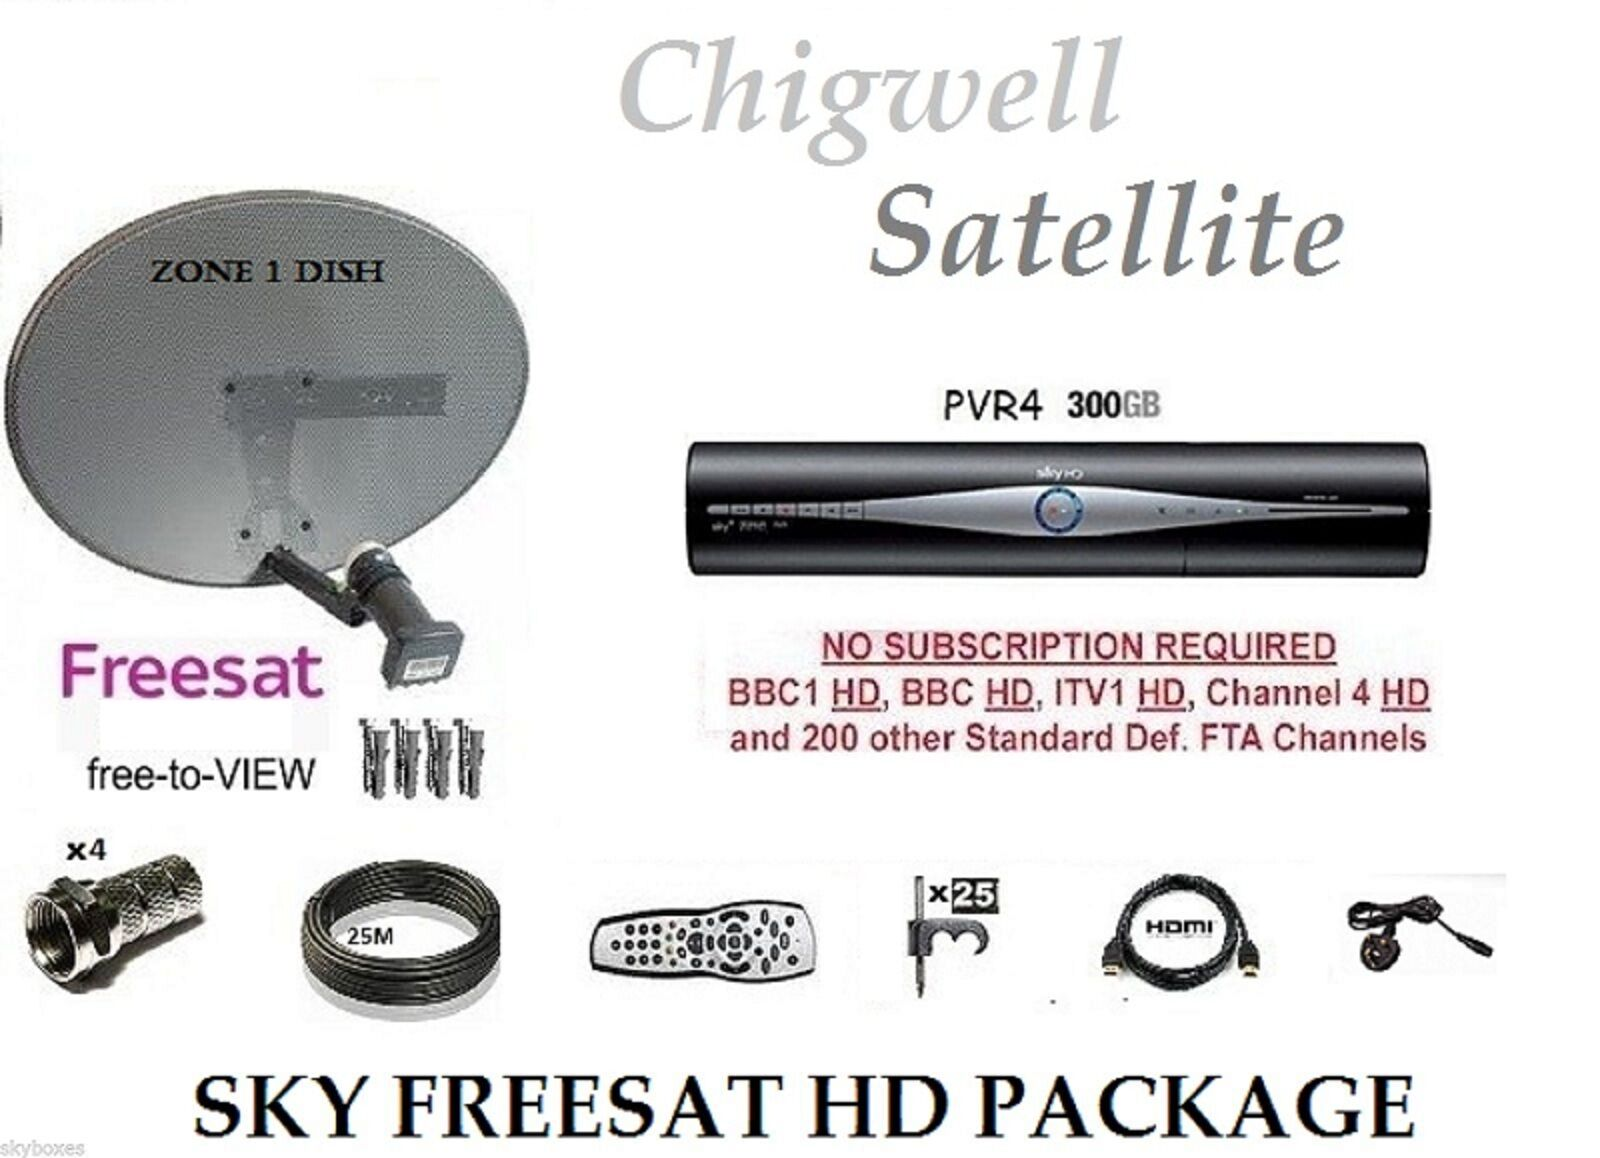 Sky Freesat Channels